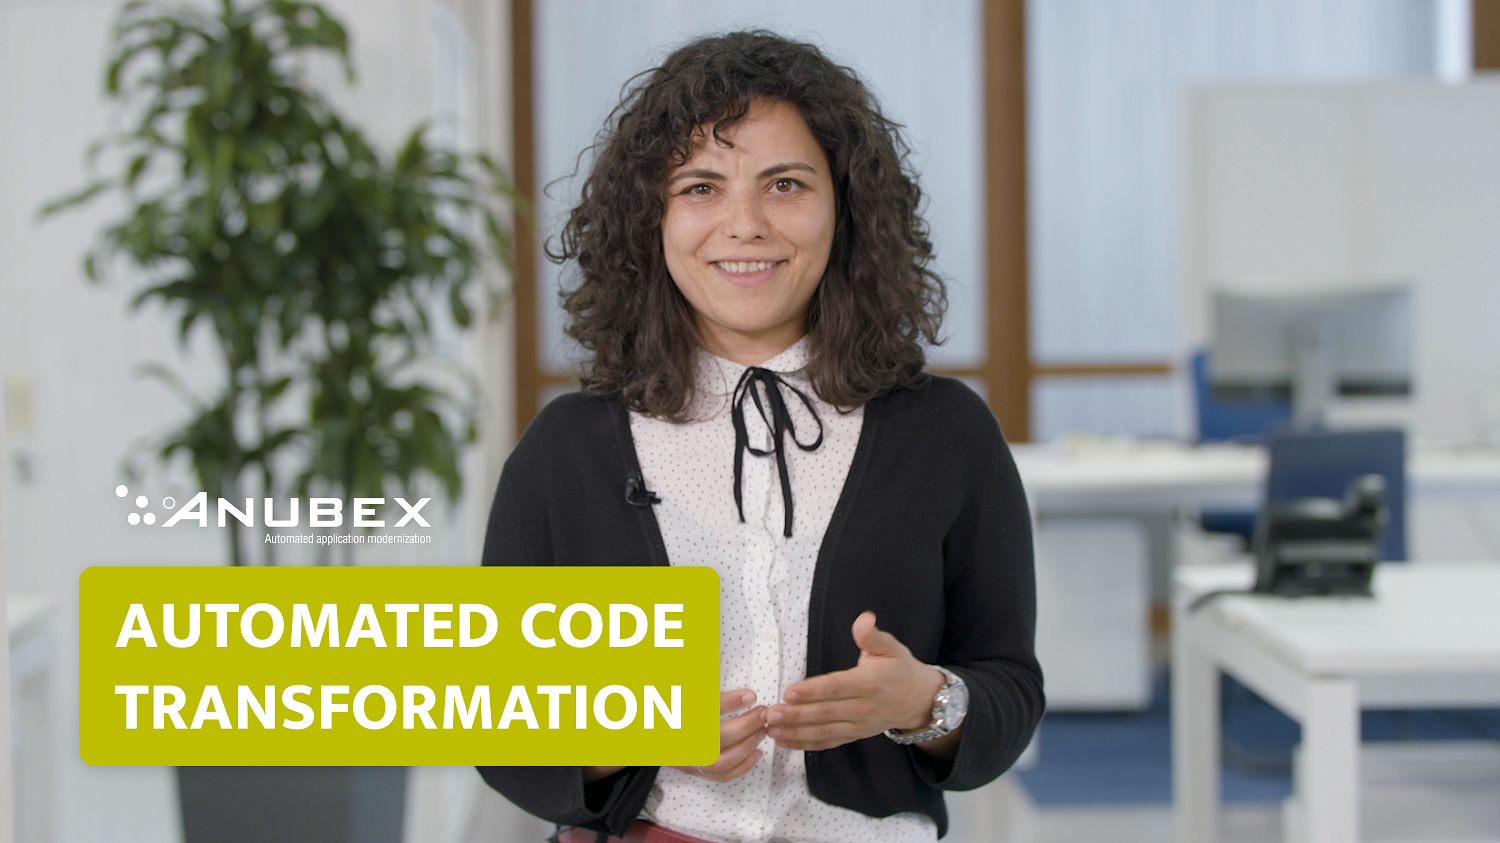 What is Automated Code Transformation?